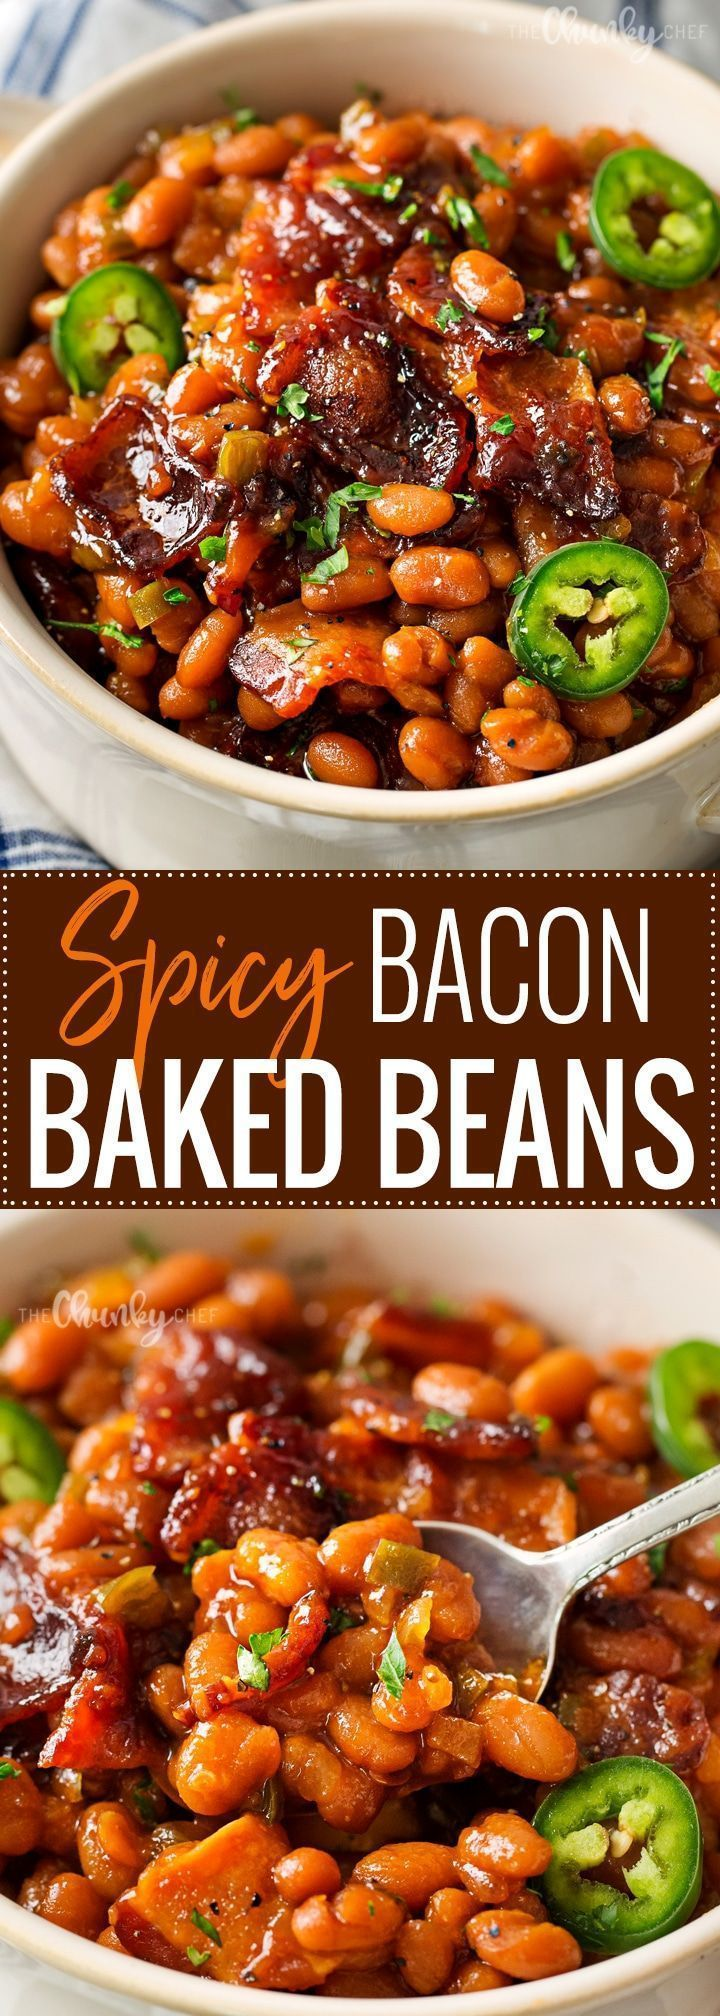 Spicy Baked Beans with Bacon   Perfect for cookouts or summer BBQ's, these baked beans with bacon have a mouthwatering spicy kick from jalapeños that make for an unforgettable side dish!   http://thechunkychef.com